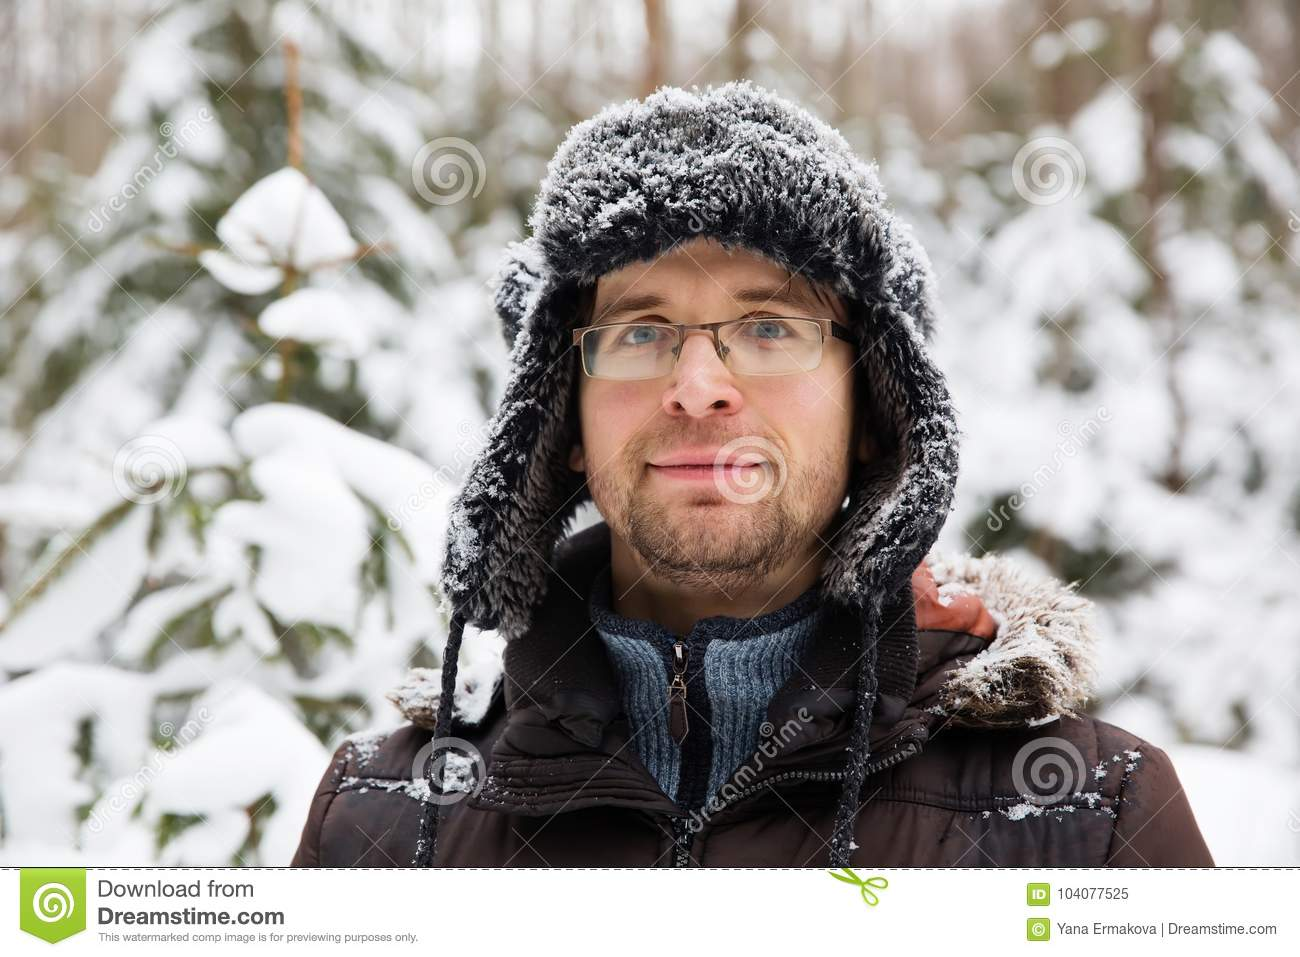 cd0e8482384 Man In Fur Winter Hat With Ear Flaps Smiling Portrait Stock Image ...